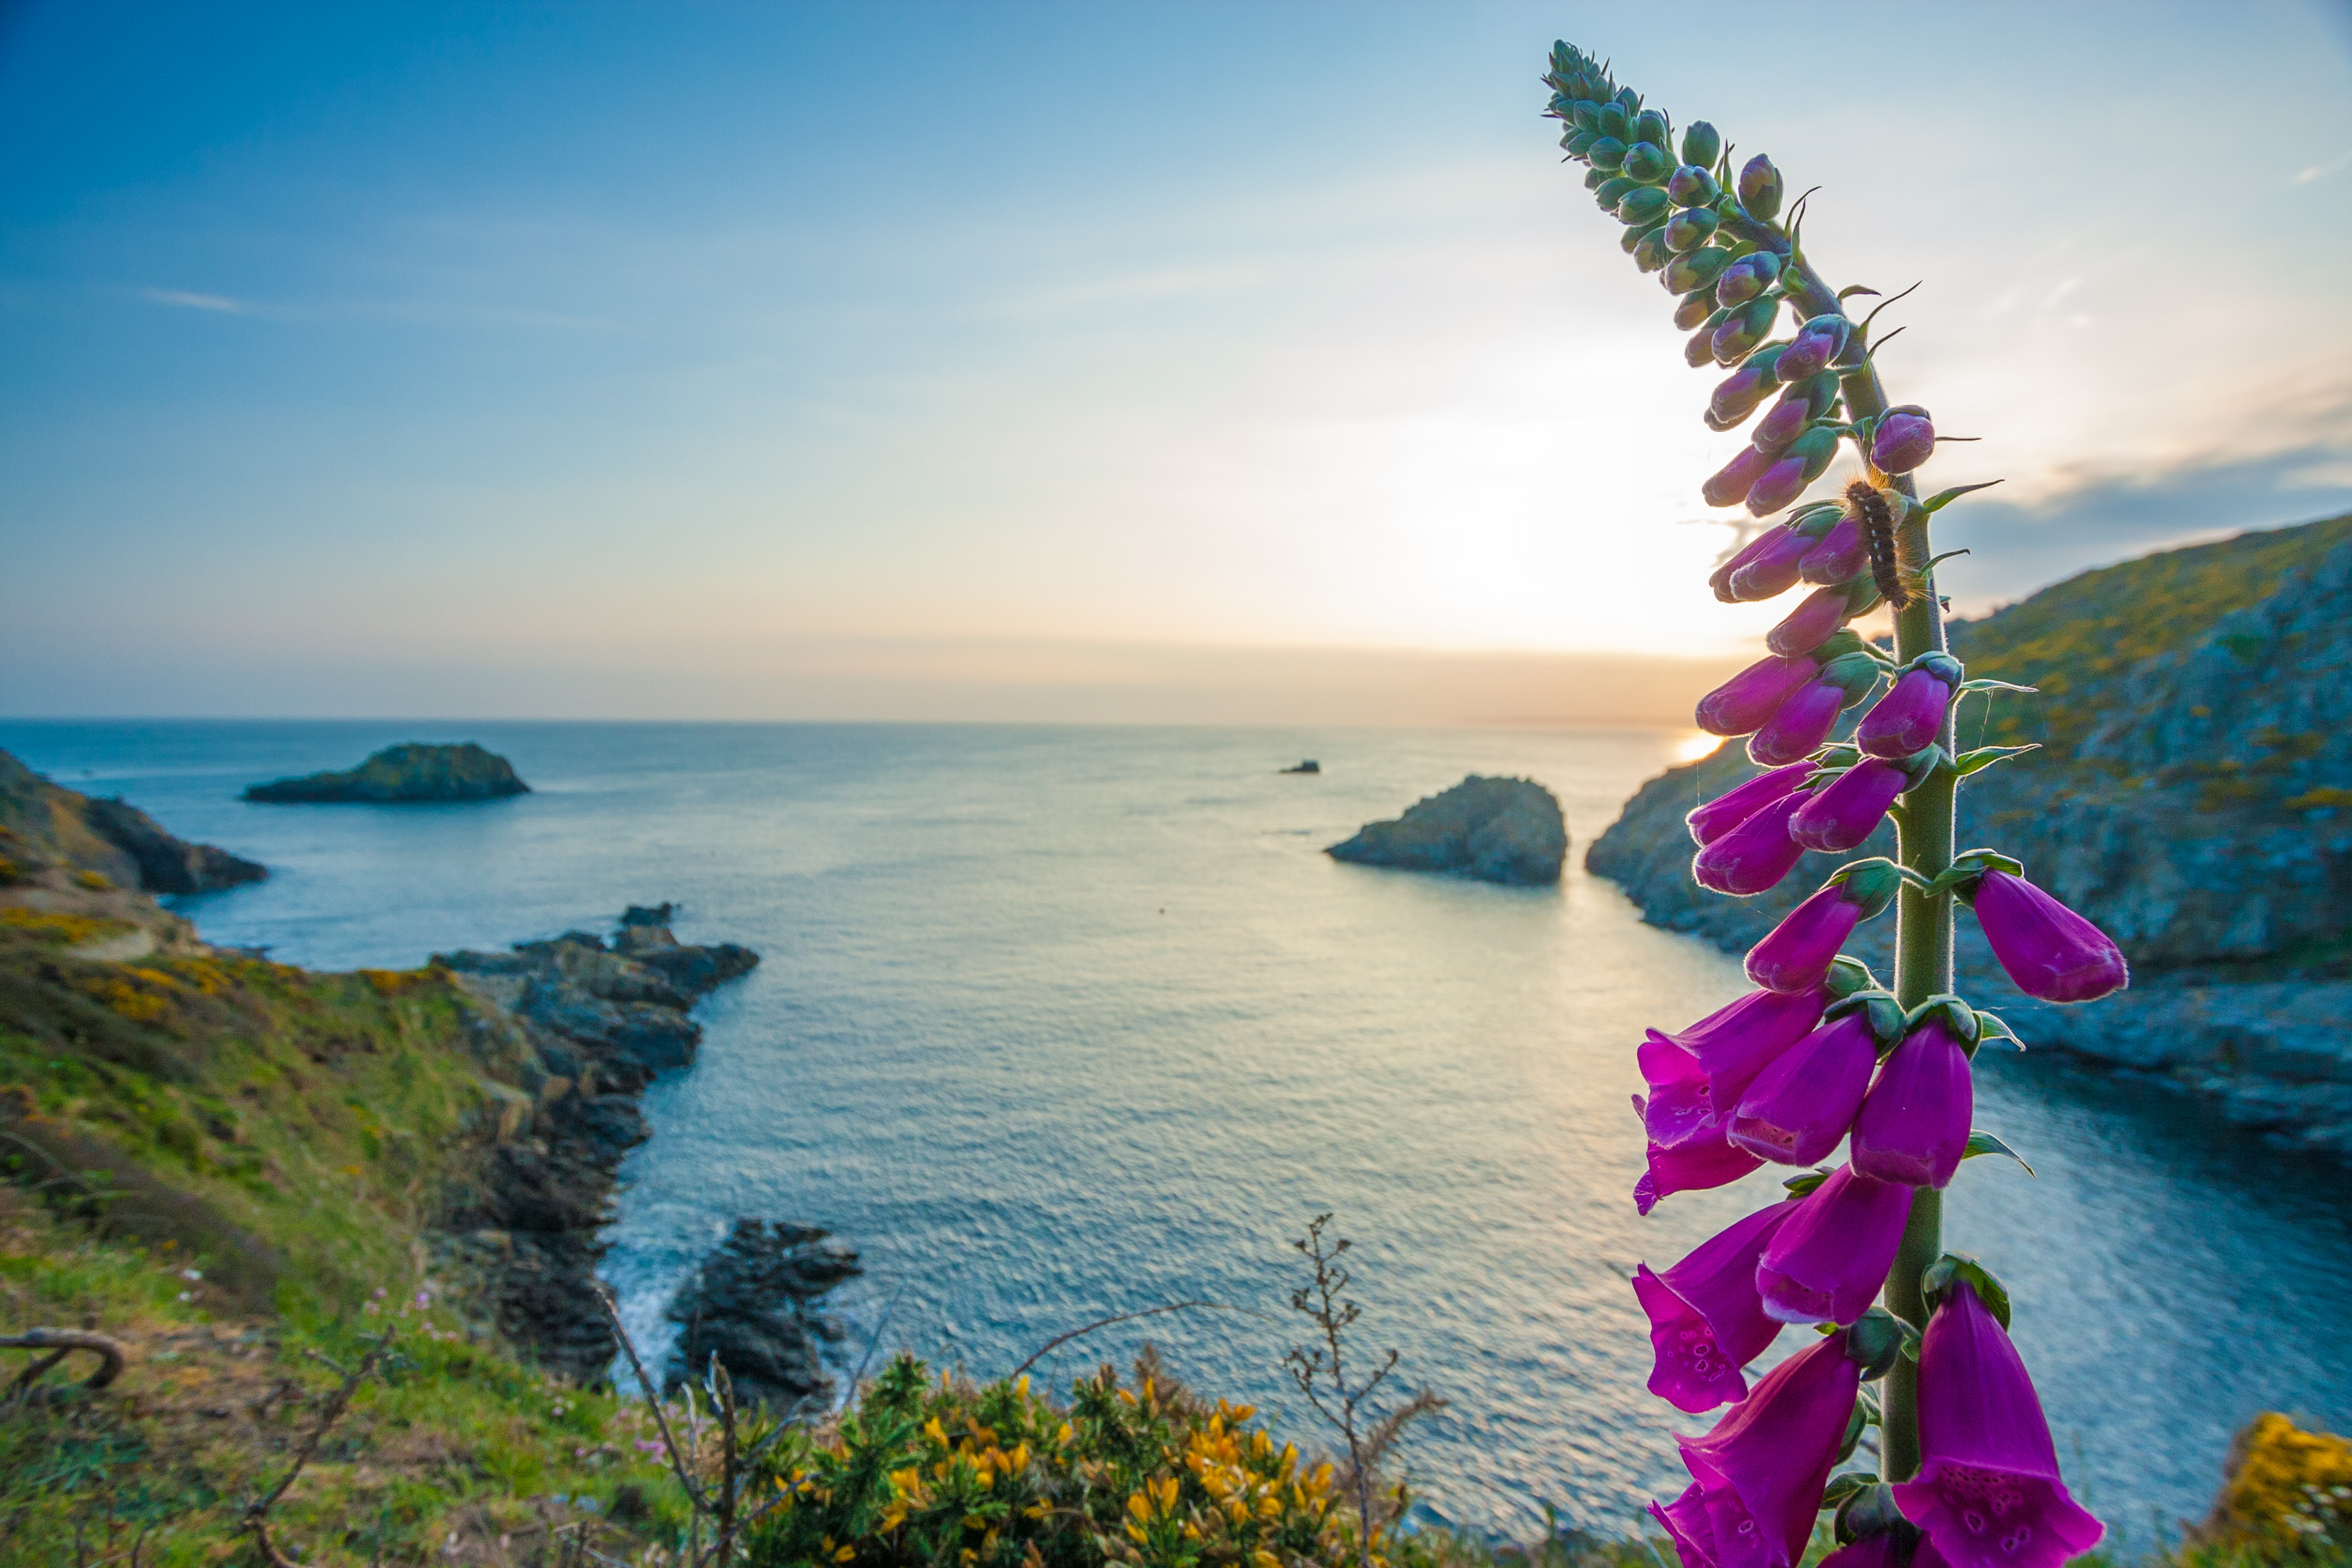 Fox glove at Port Gorey